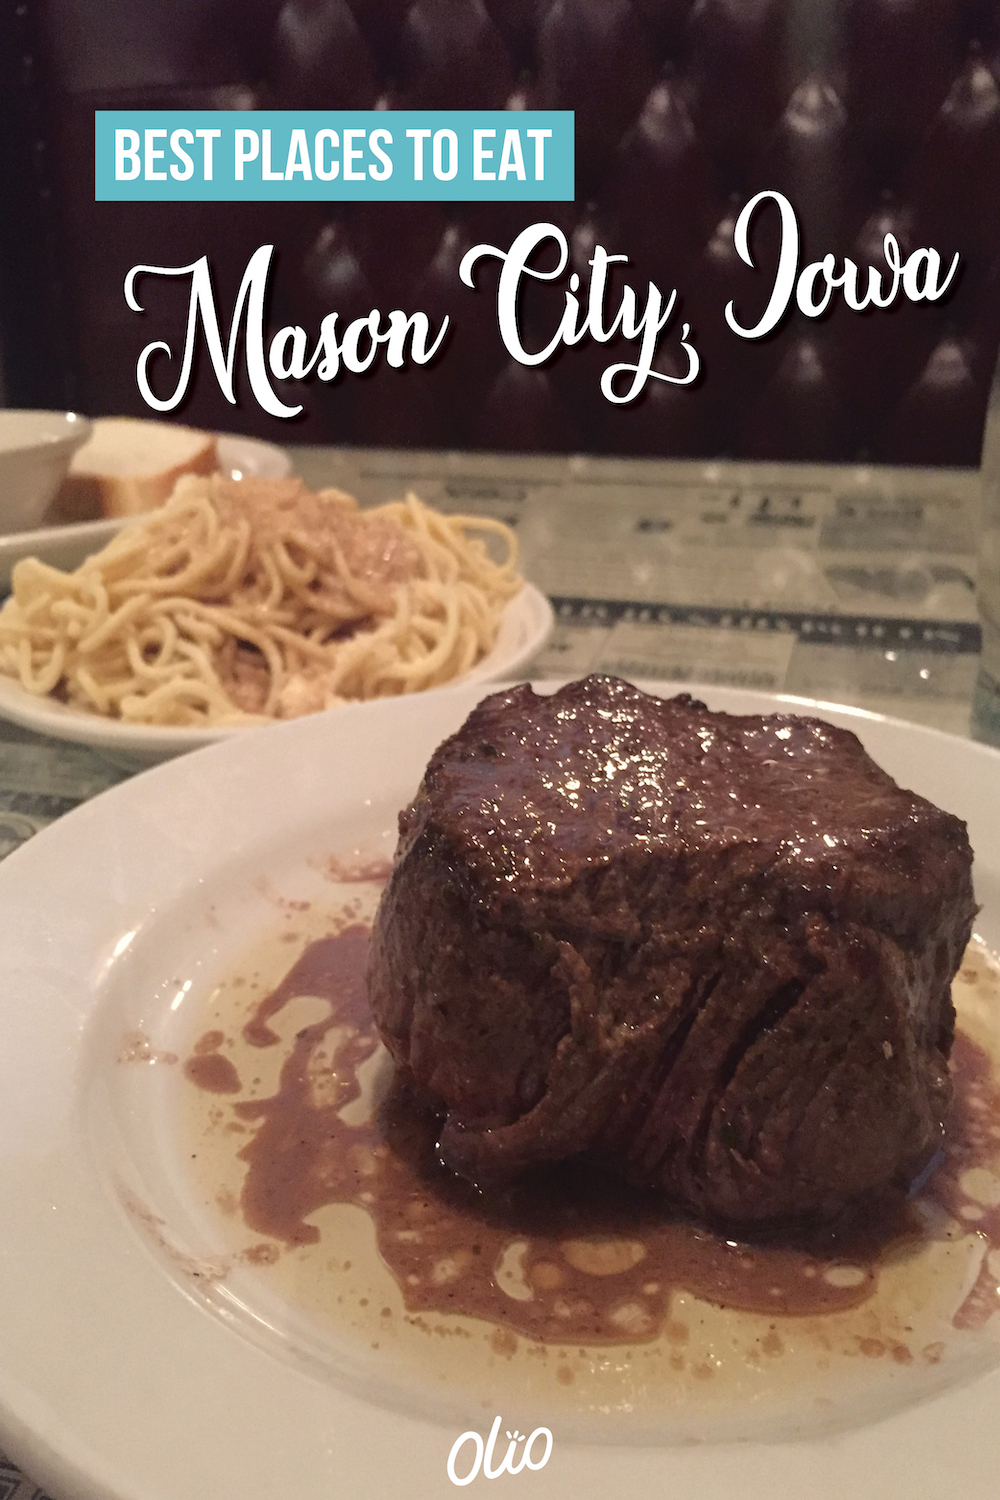 From classic steakhouses and delis to Mexican restaurants and ice cream shops, there are tons of incredible places to eat in Mason City, Iowa! Visit a craft brewery for a locally brewed pint, eat dinner at a 100-year-old steakhouse, indulge in some of the state's best ice cream and so much more. #Iowa #MasonCity